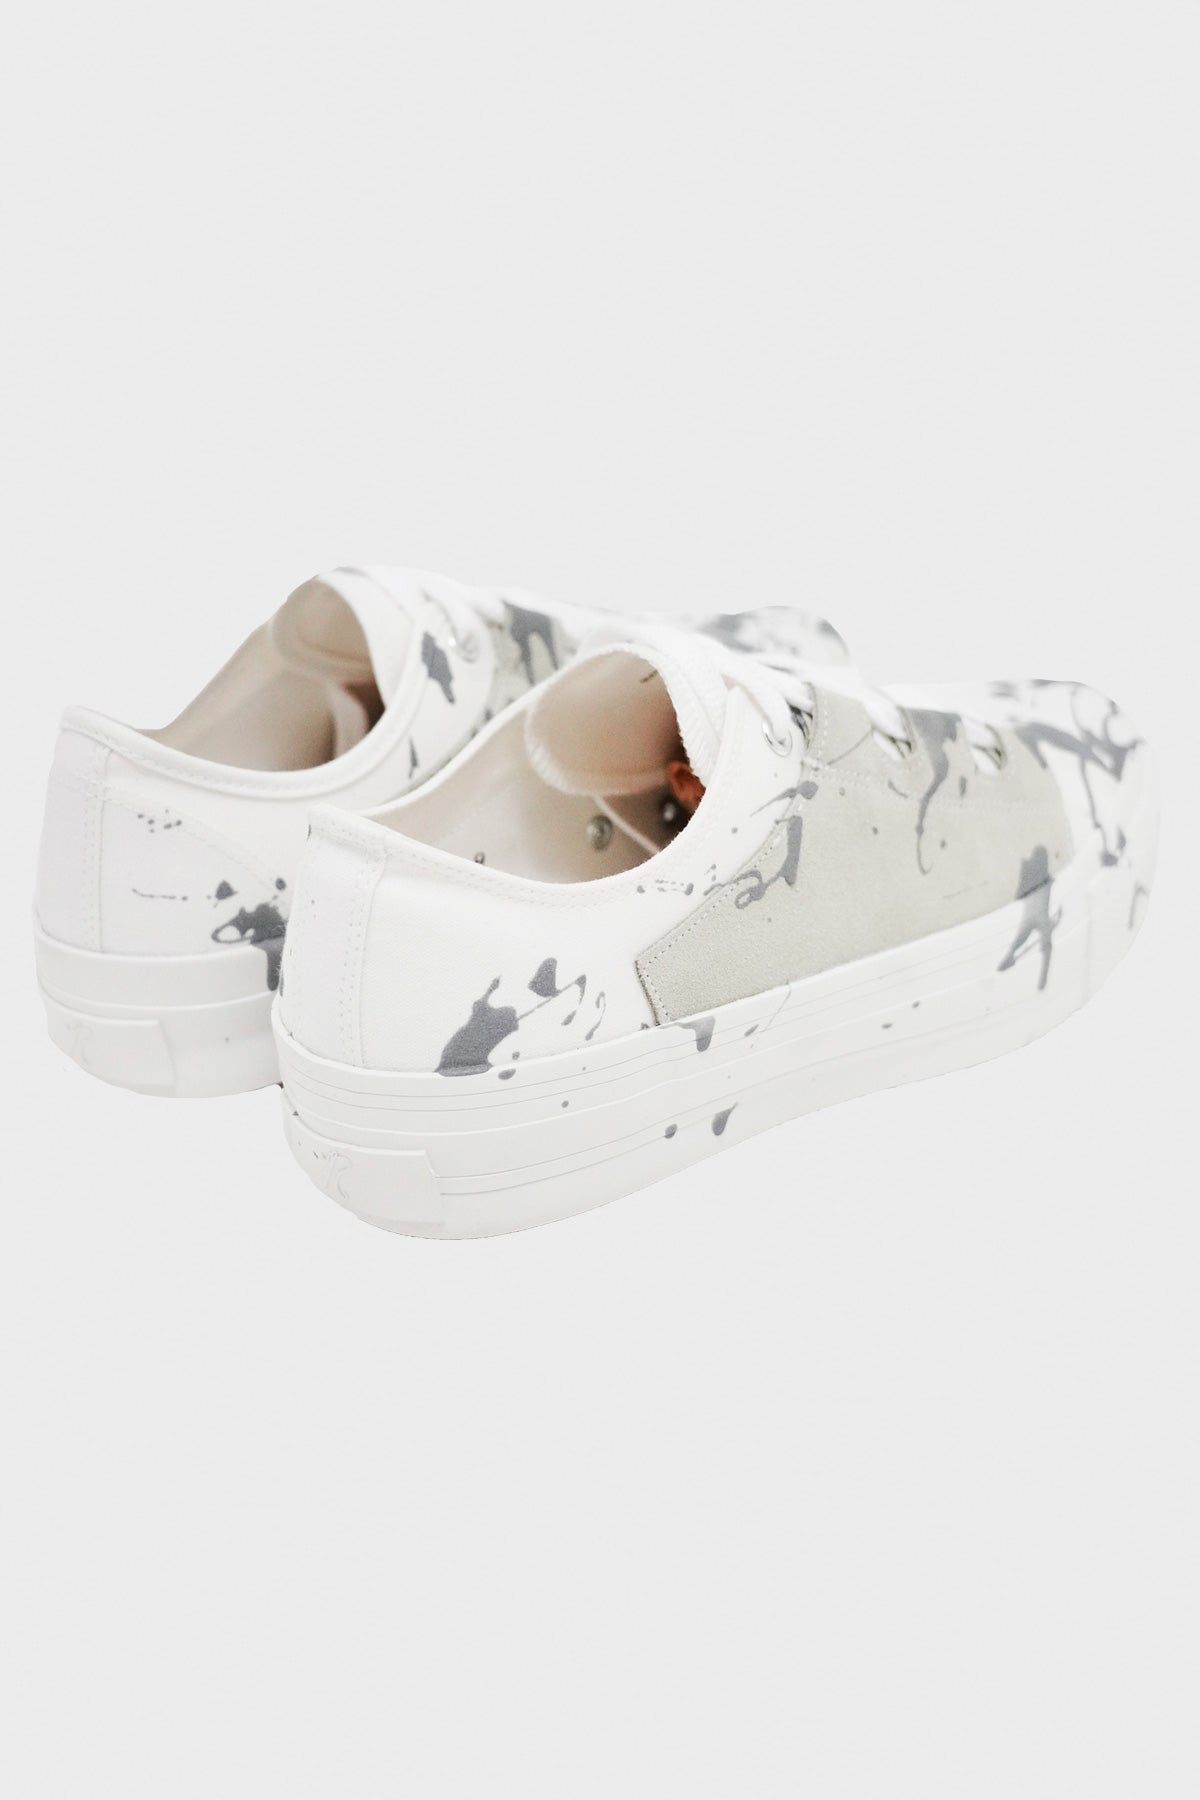 Needles - Asymmetric Ghillie Sneaker - White - Canoe Club